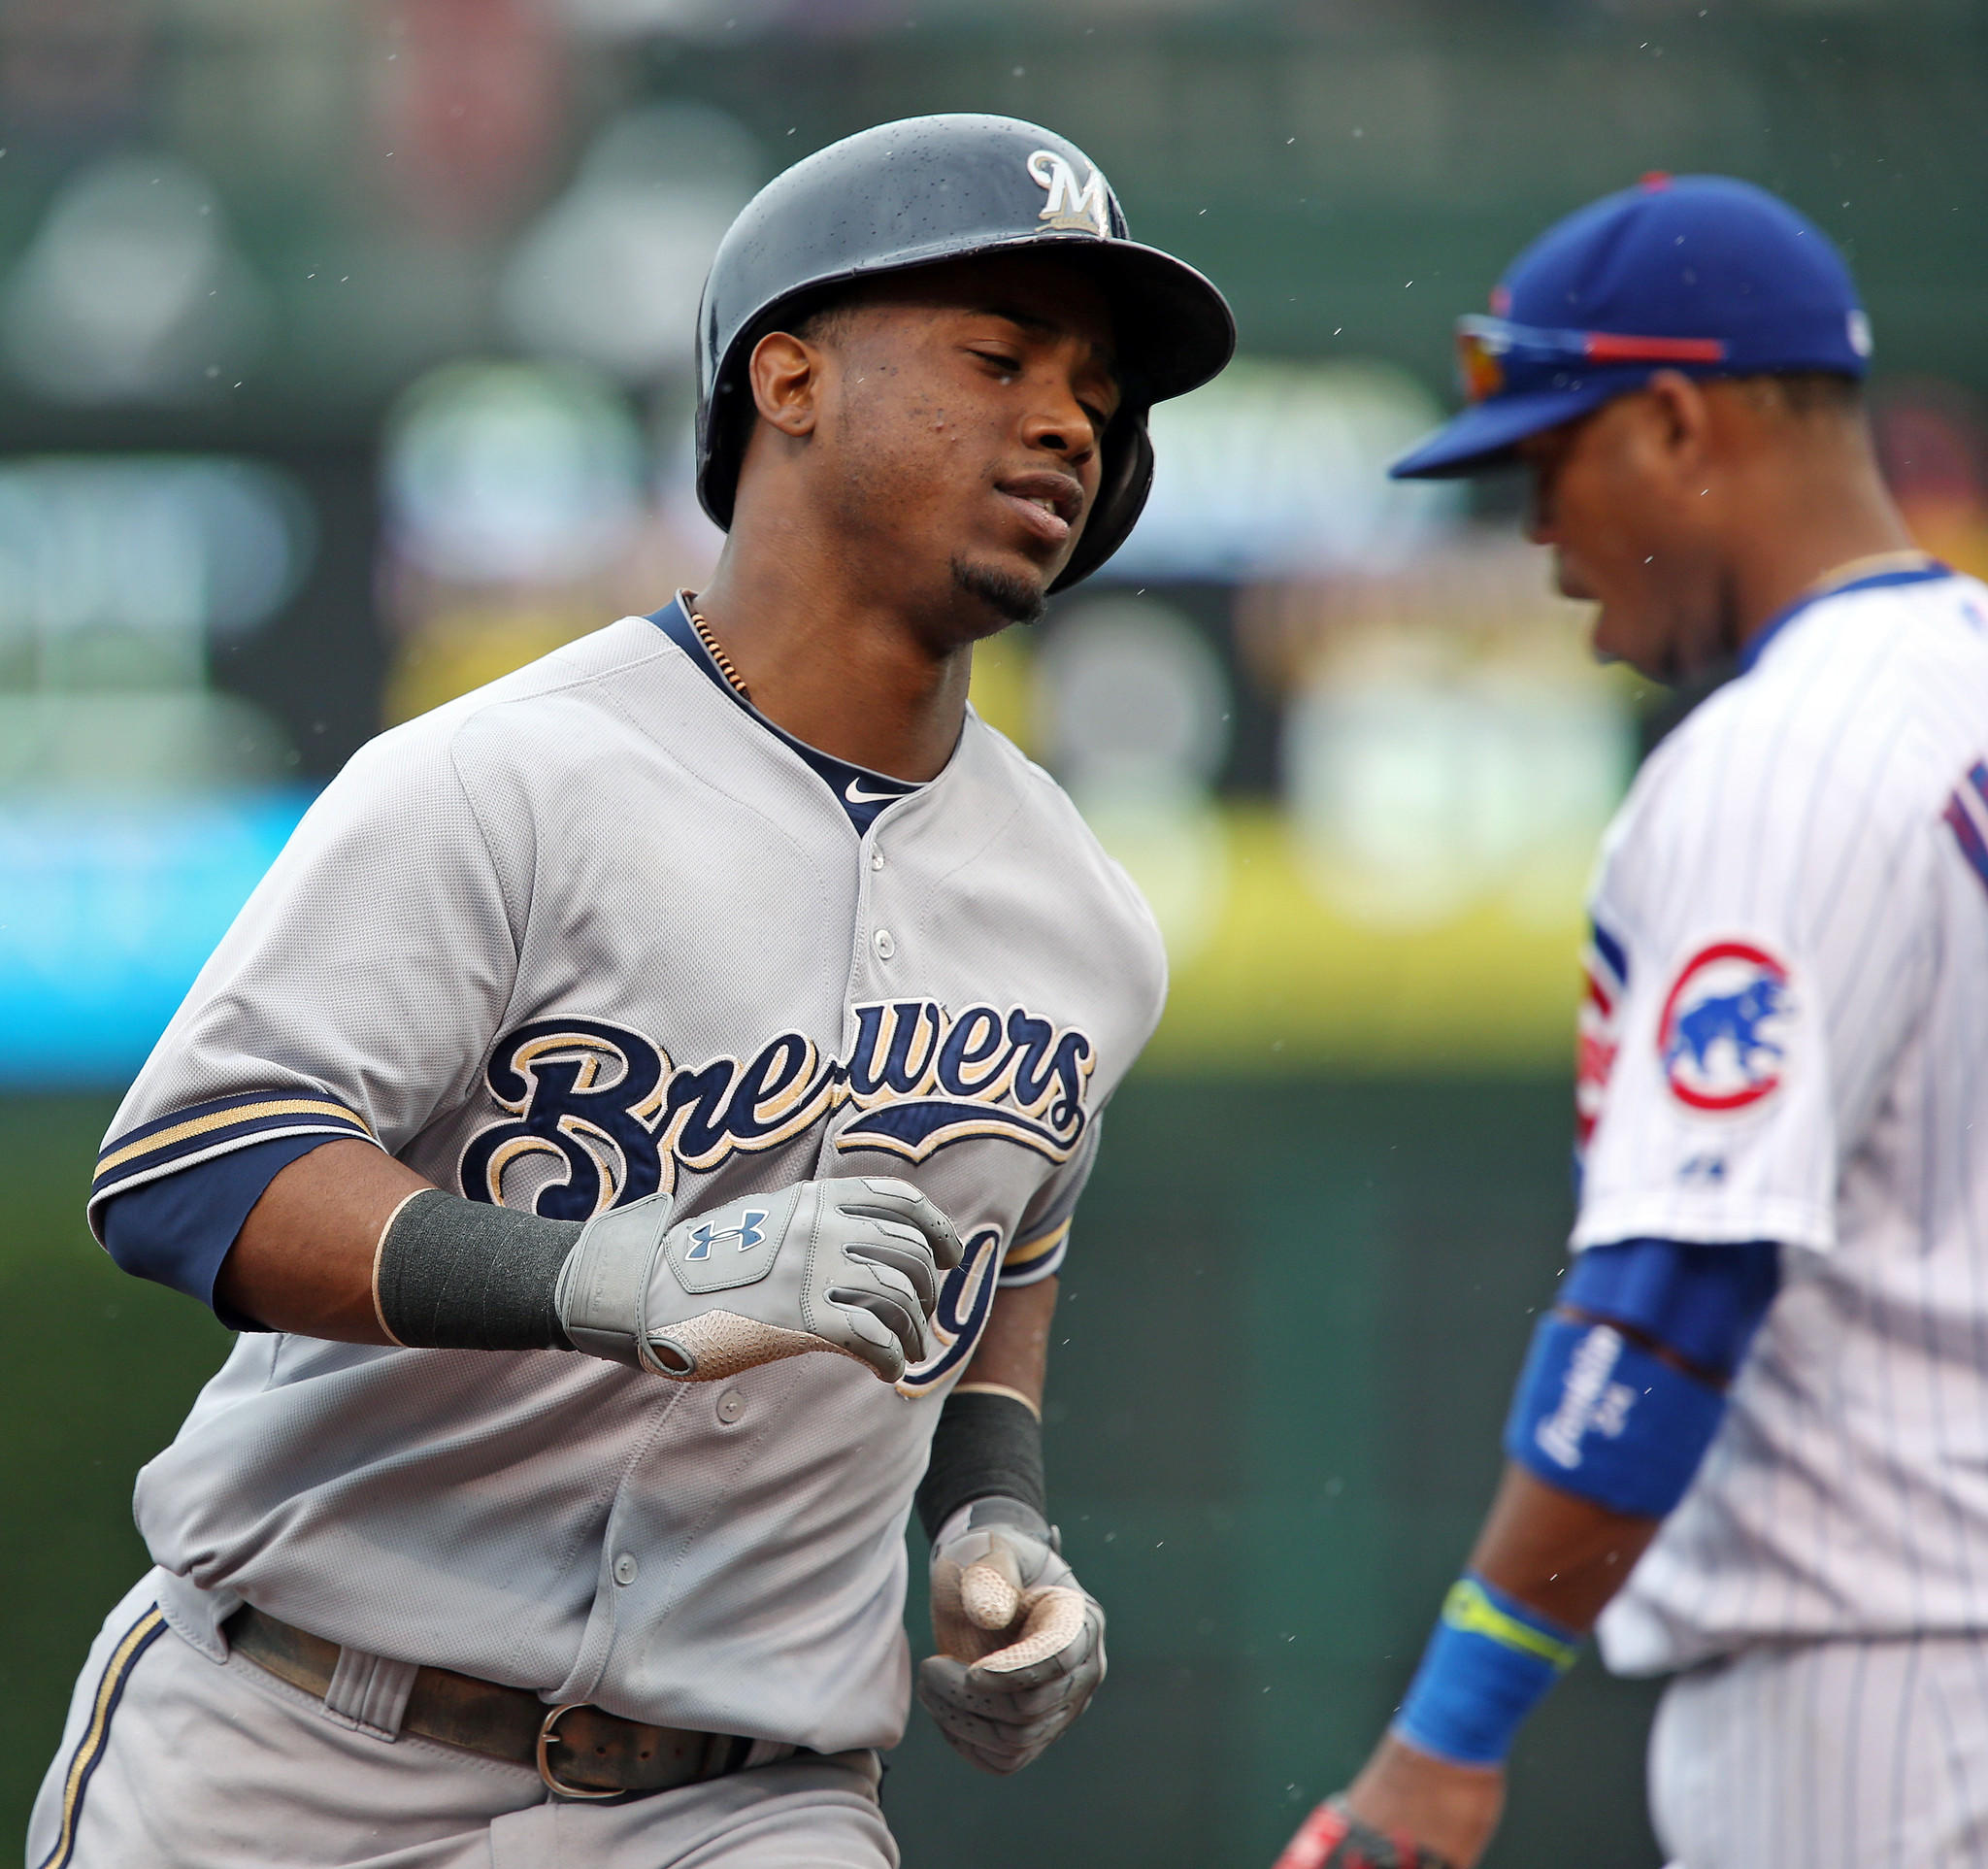 Jean Segura has left the Brewers after learning his 9-month-old son died.